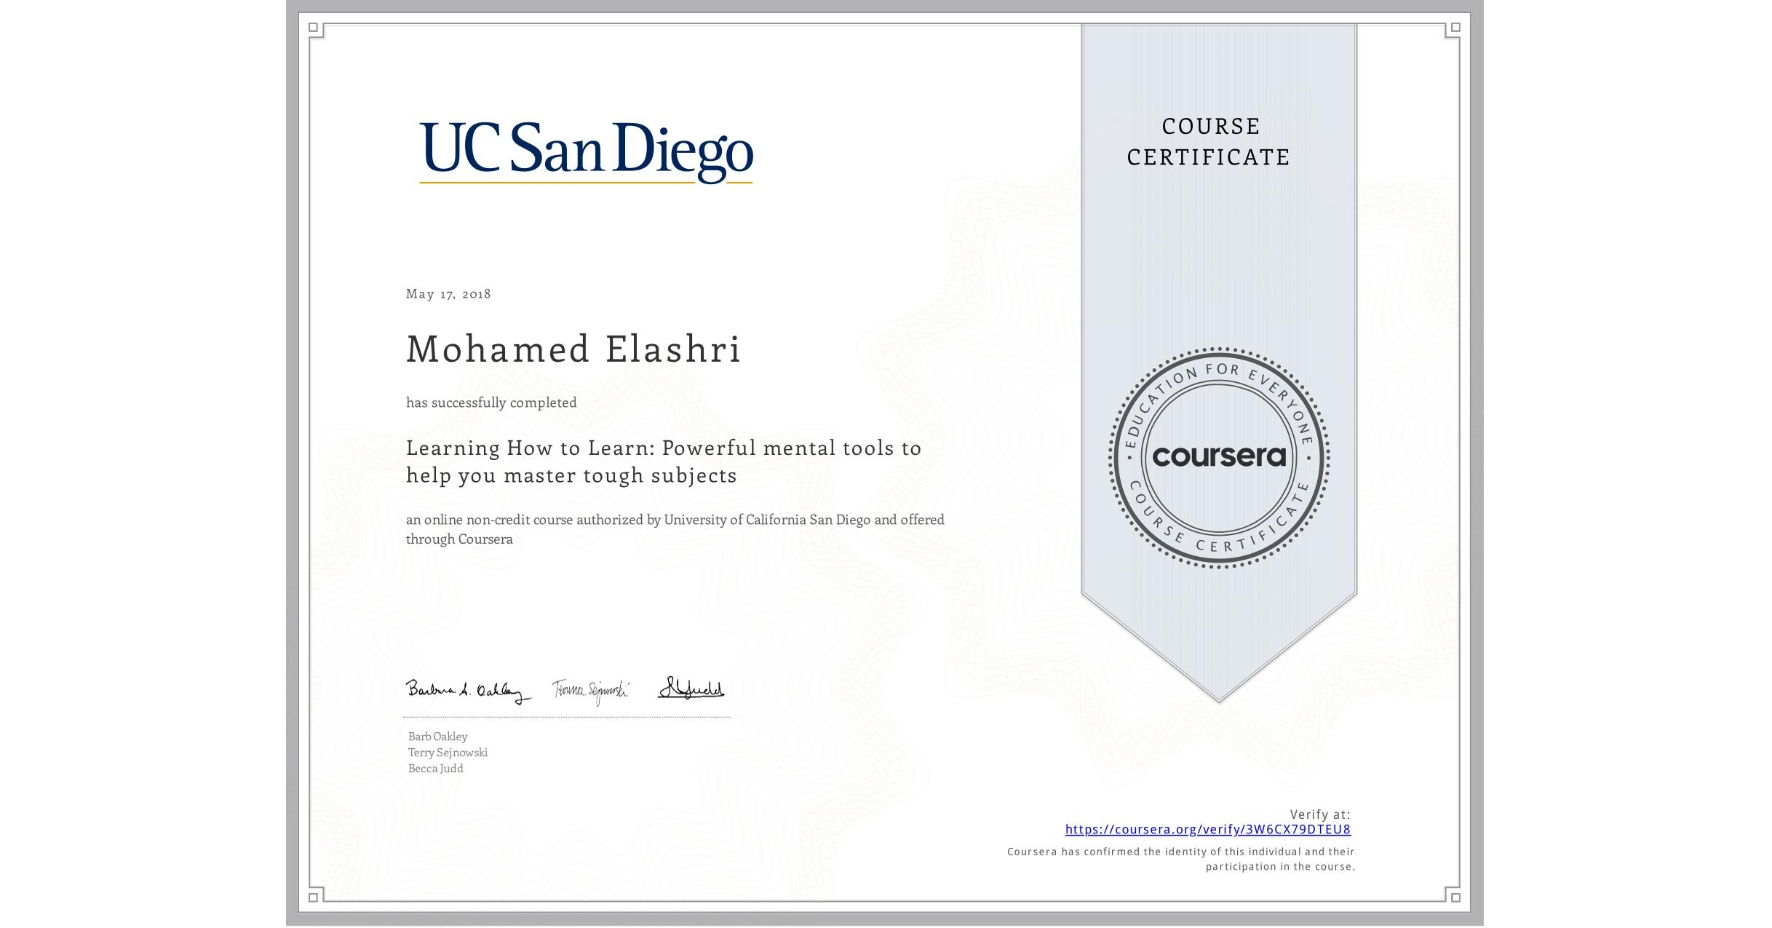 View certificate for Mohamed Elashri, Learning How to Learn: Powerful mental tools to help you master tough subjects, an online non-credit course authorized by McMaster University & University of California San Diego and offered through Coursera